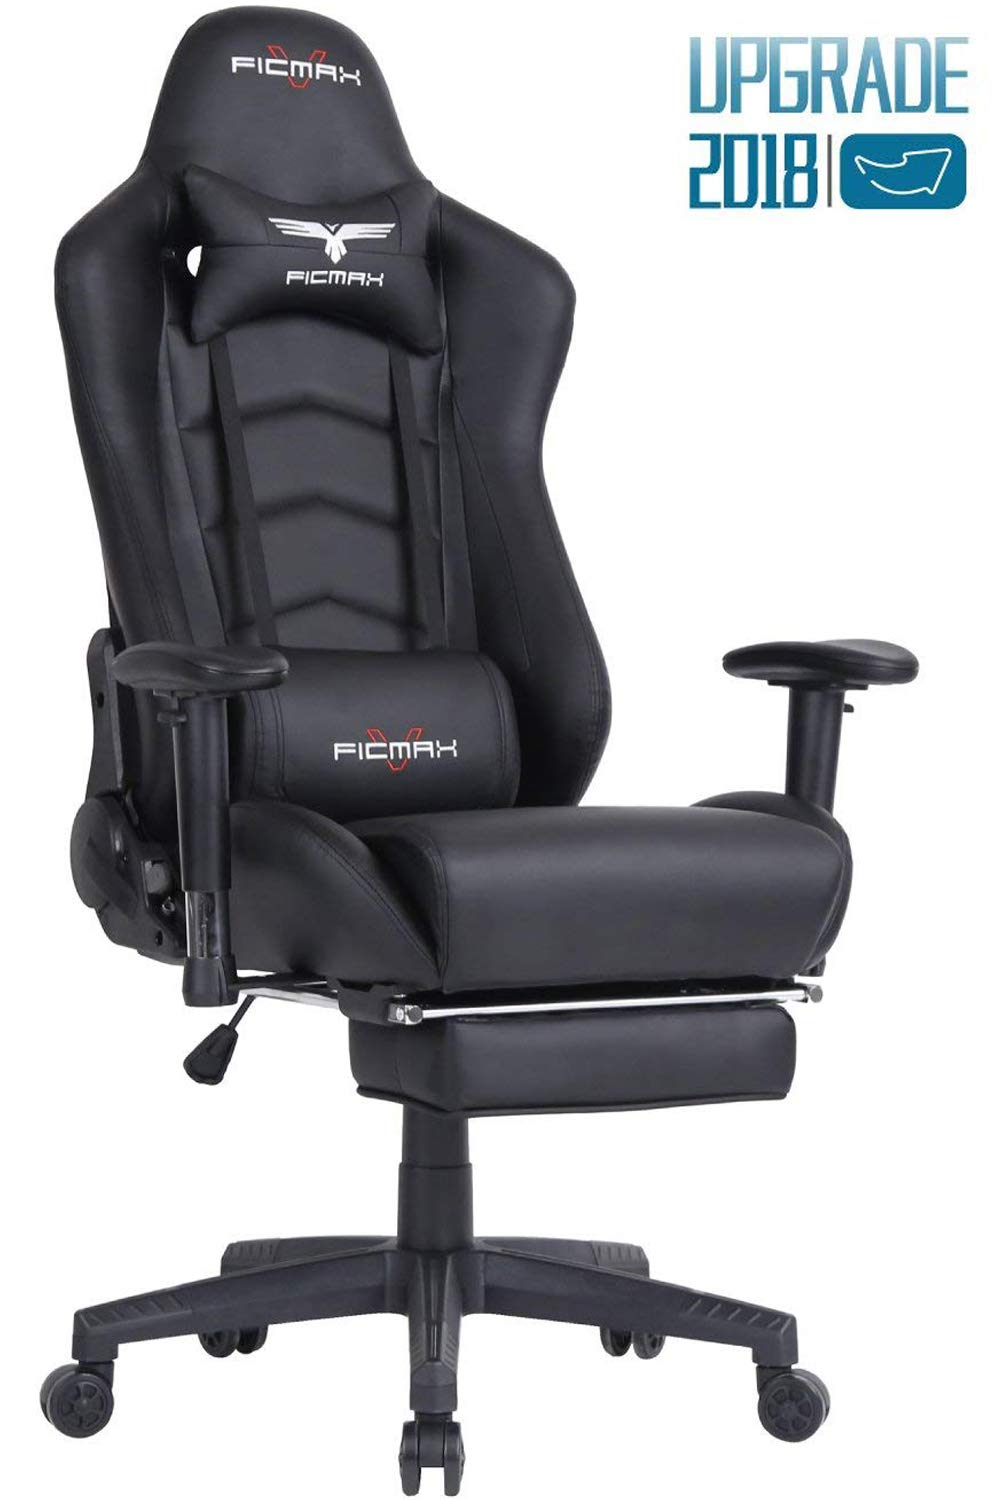 Best Gaming Chair For Big Guys Of 2018 Complete Reviews